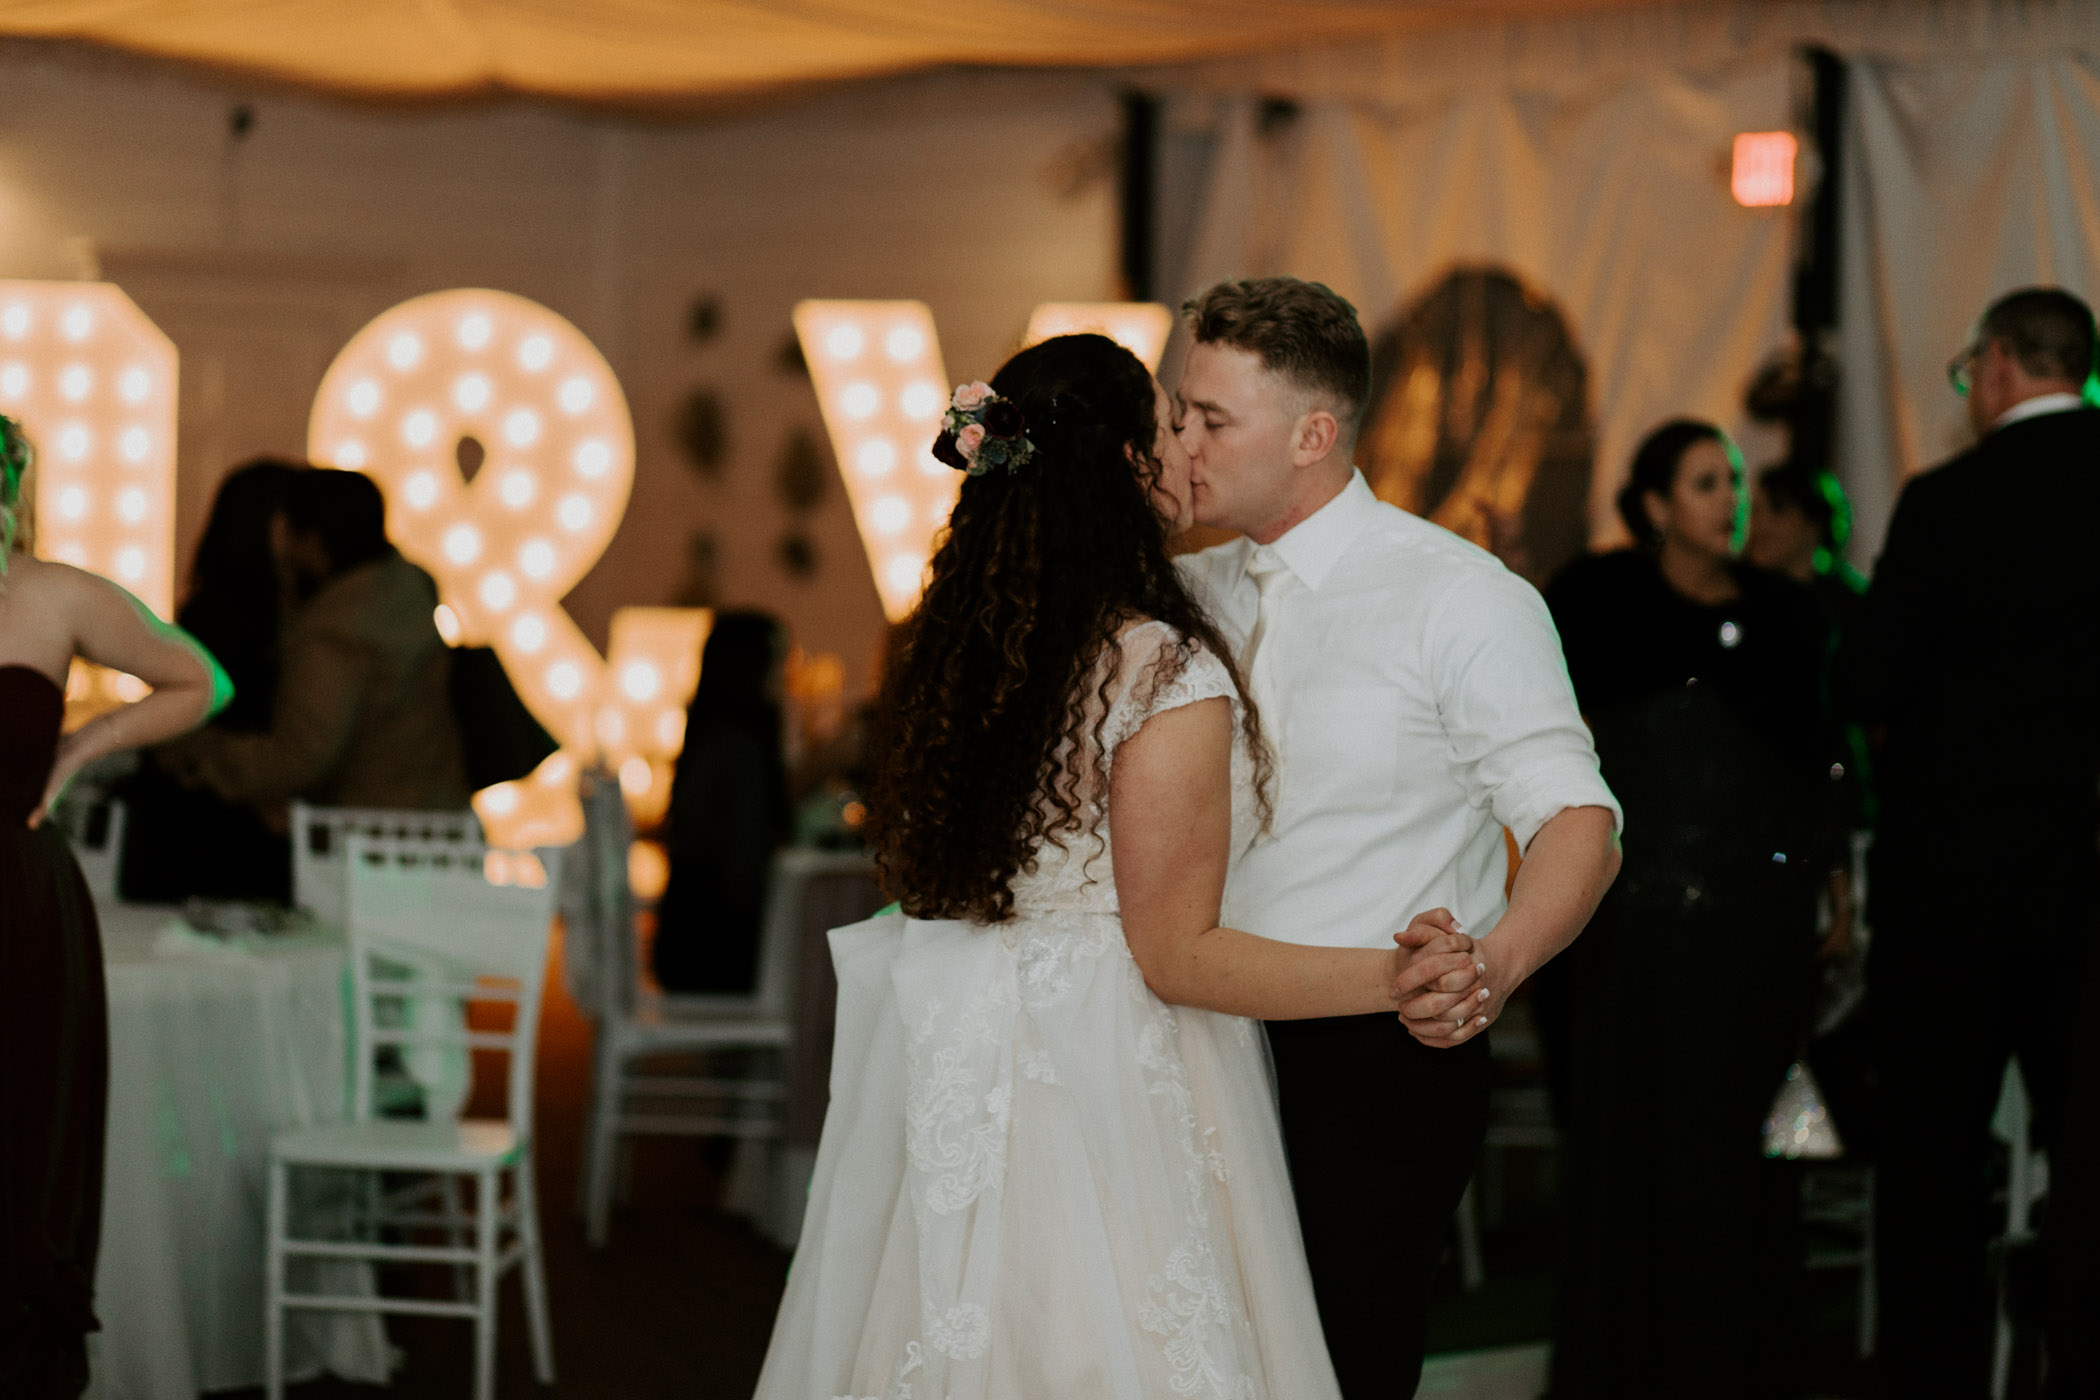 Bride and groom dancing in front of large light up letters